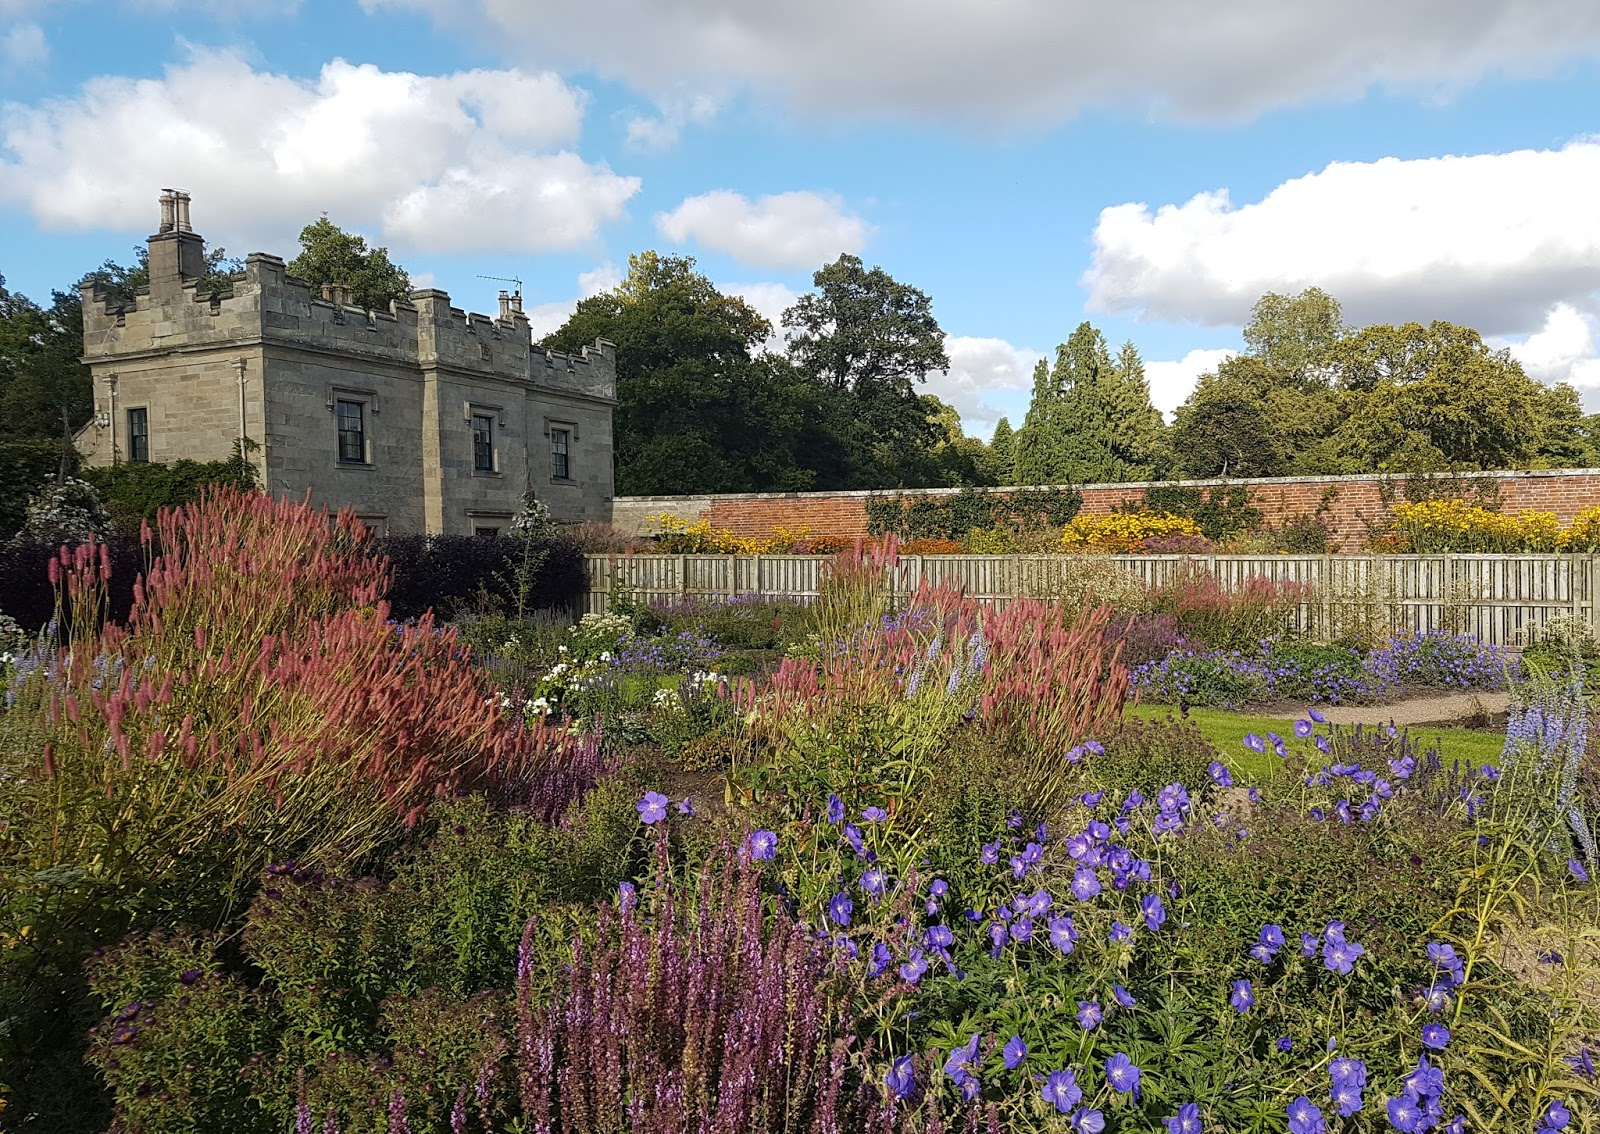 Quirky Bird Gardener Blog: Bracken visits Floors Castle Gardens